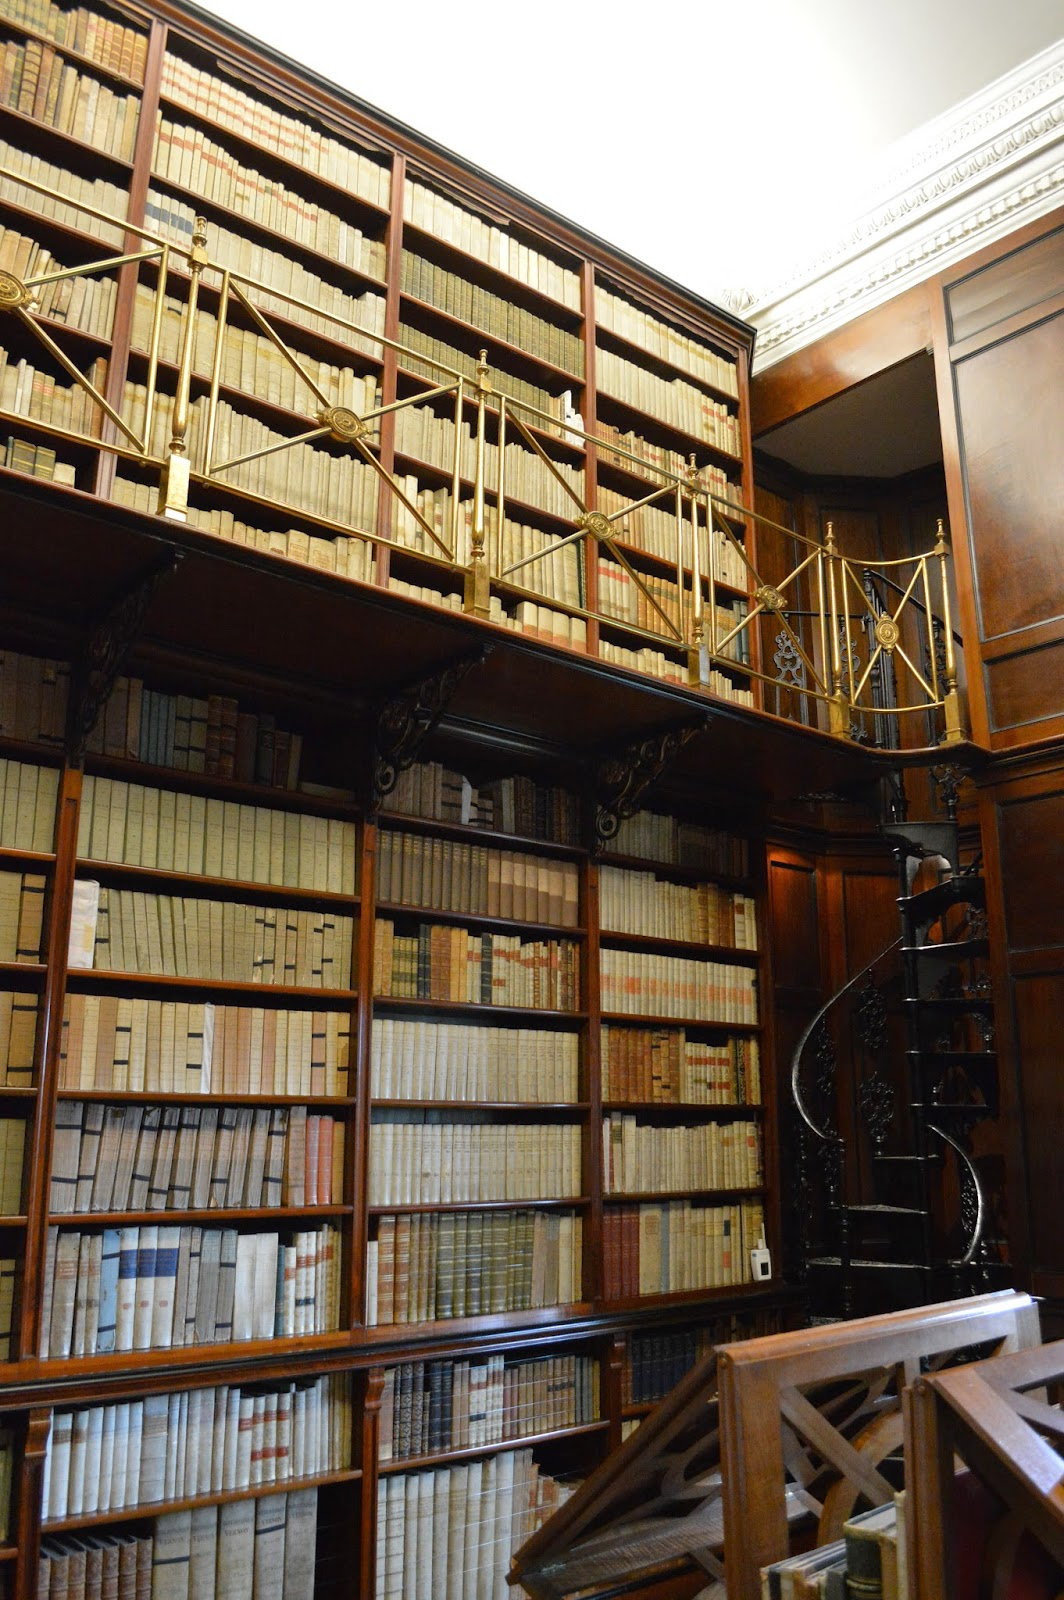 Library, spiral staircase, Sudbury Hall, photos, photograph, historical properties, BBC Pride and Prejudice film location, National Trust, review, derby, 17th century, inside, outside, visit